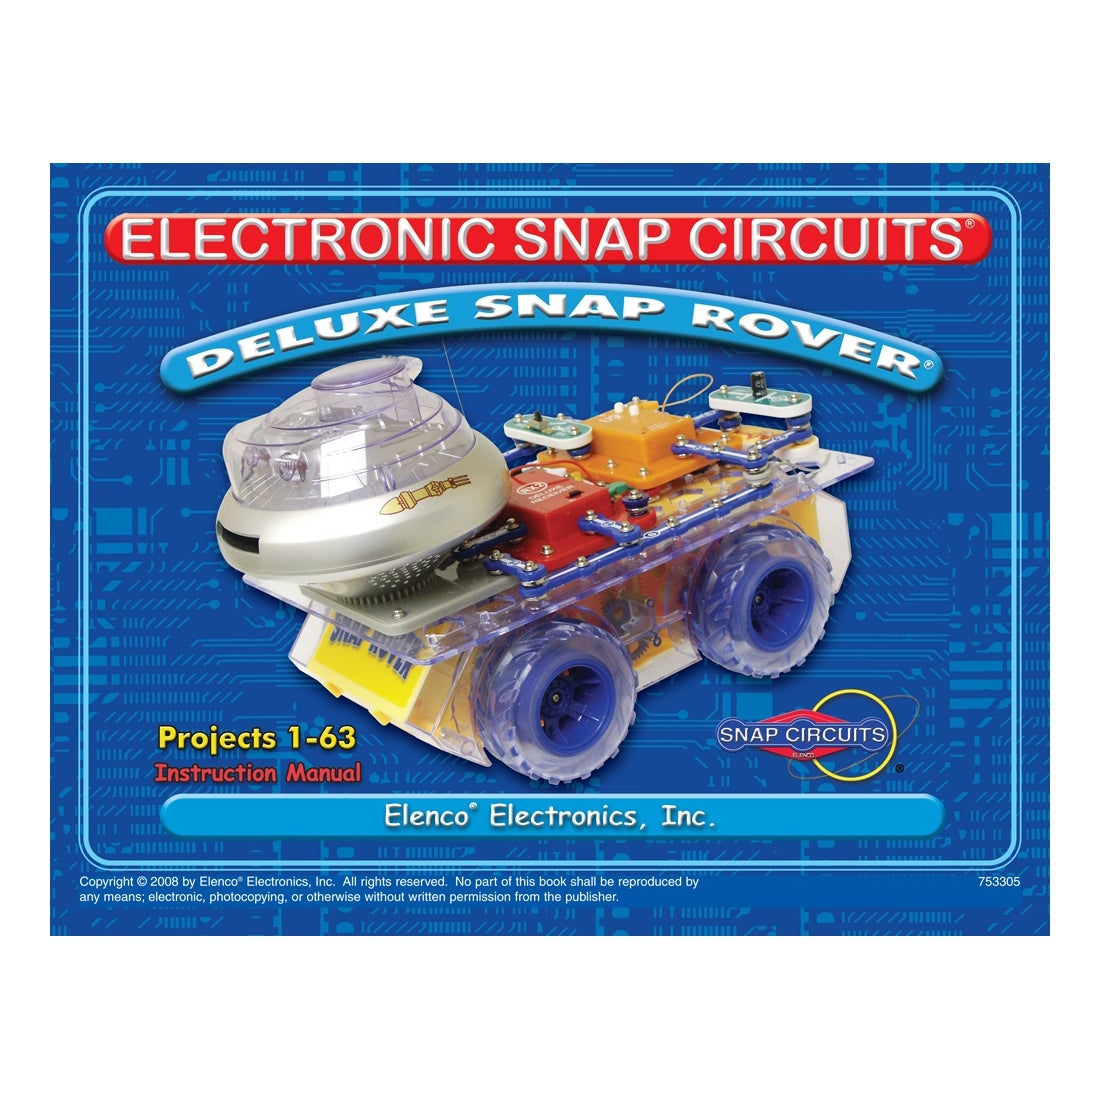 Electronic Snap Circuits Toys Games Compare Prices At Nextag Circuit Electronics Deluxe Rover